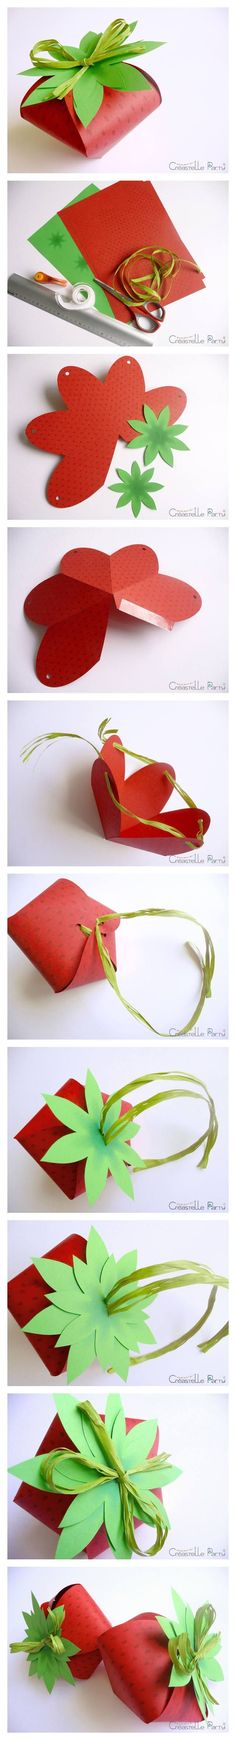 Ideas para sorprender con tu packaging